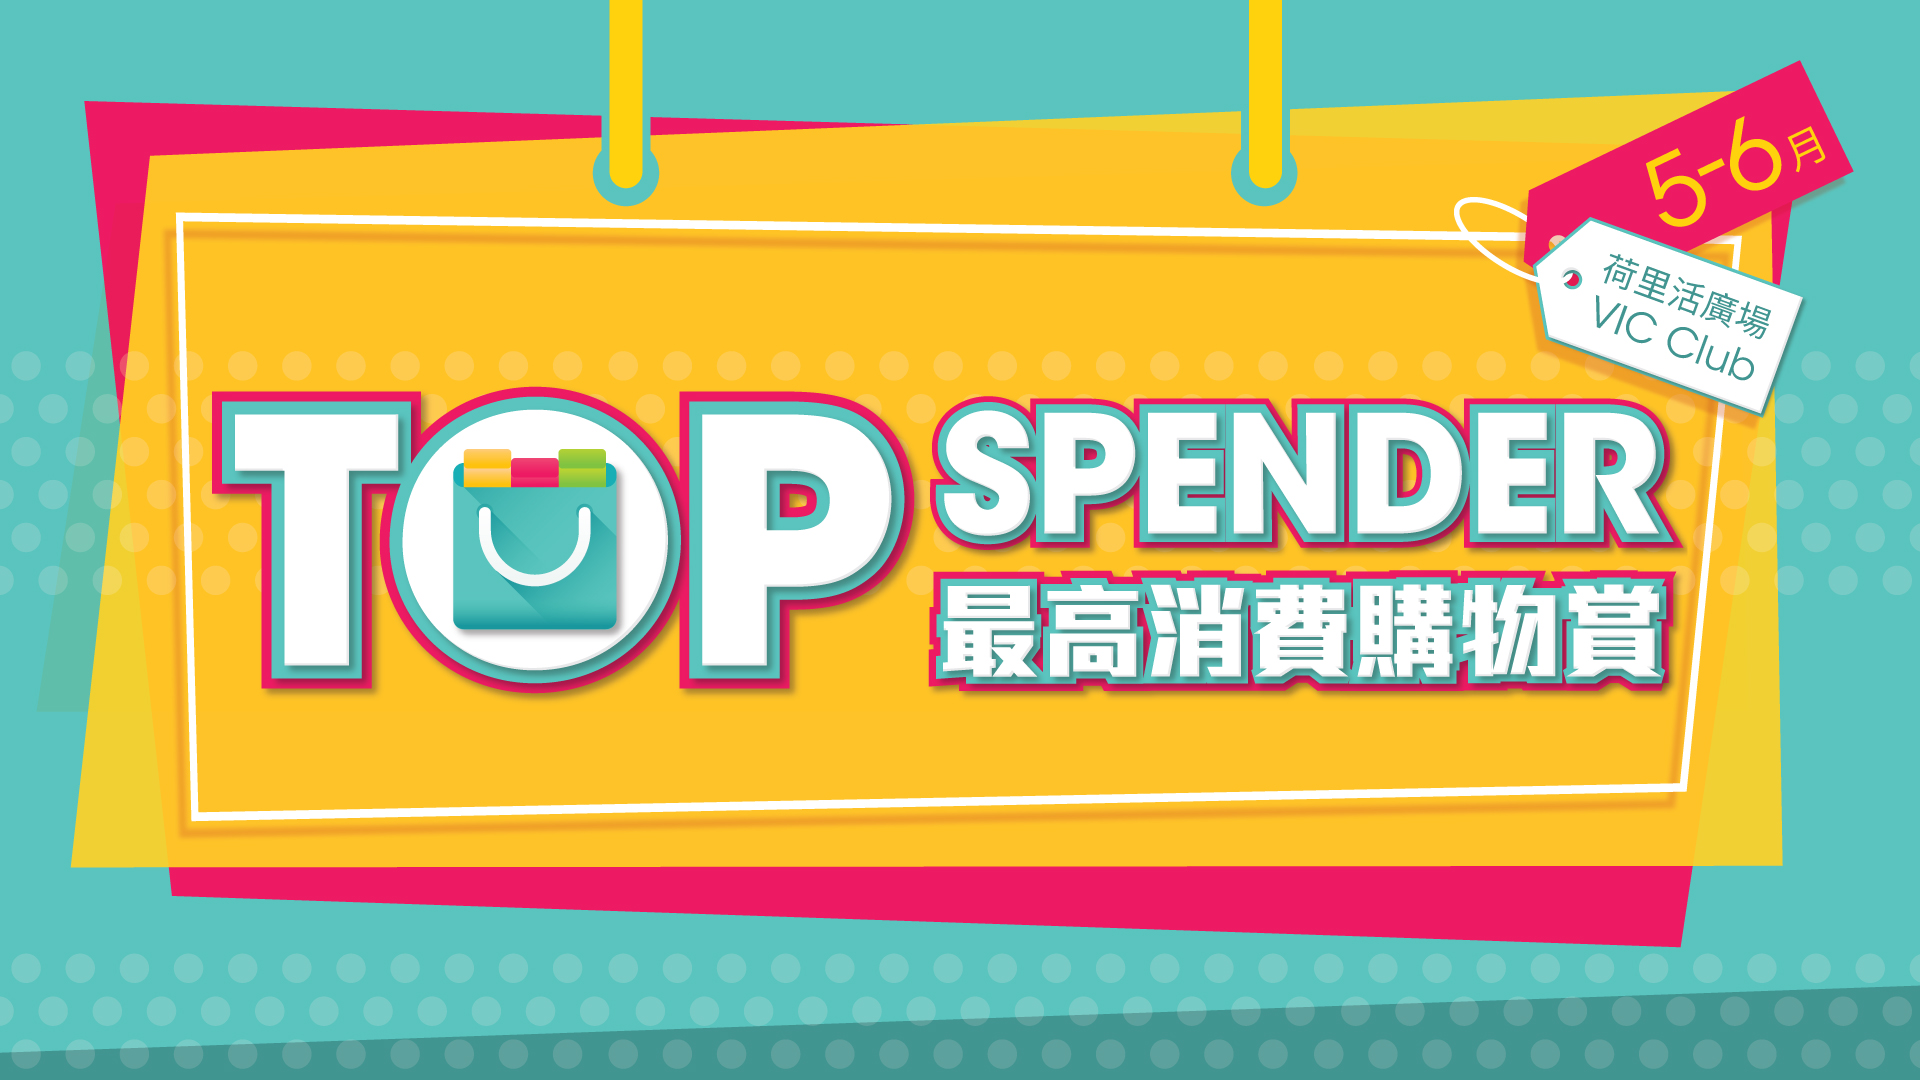 VIC Highest Spending Program (May-Jun)